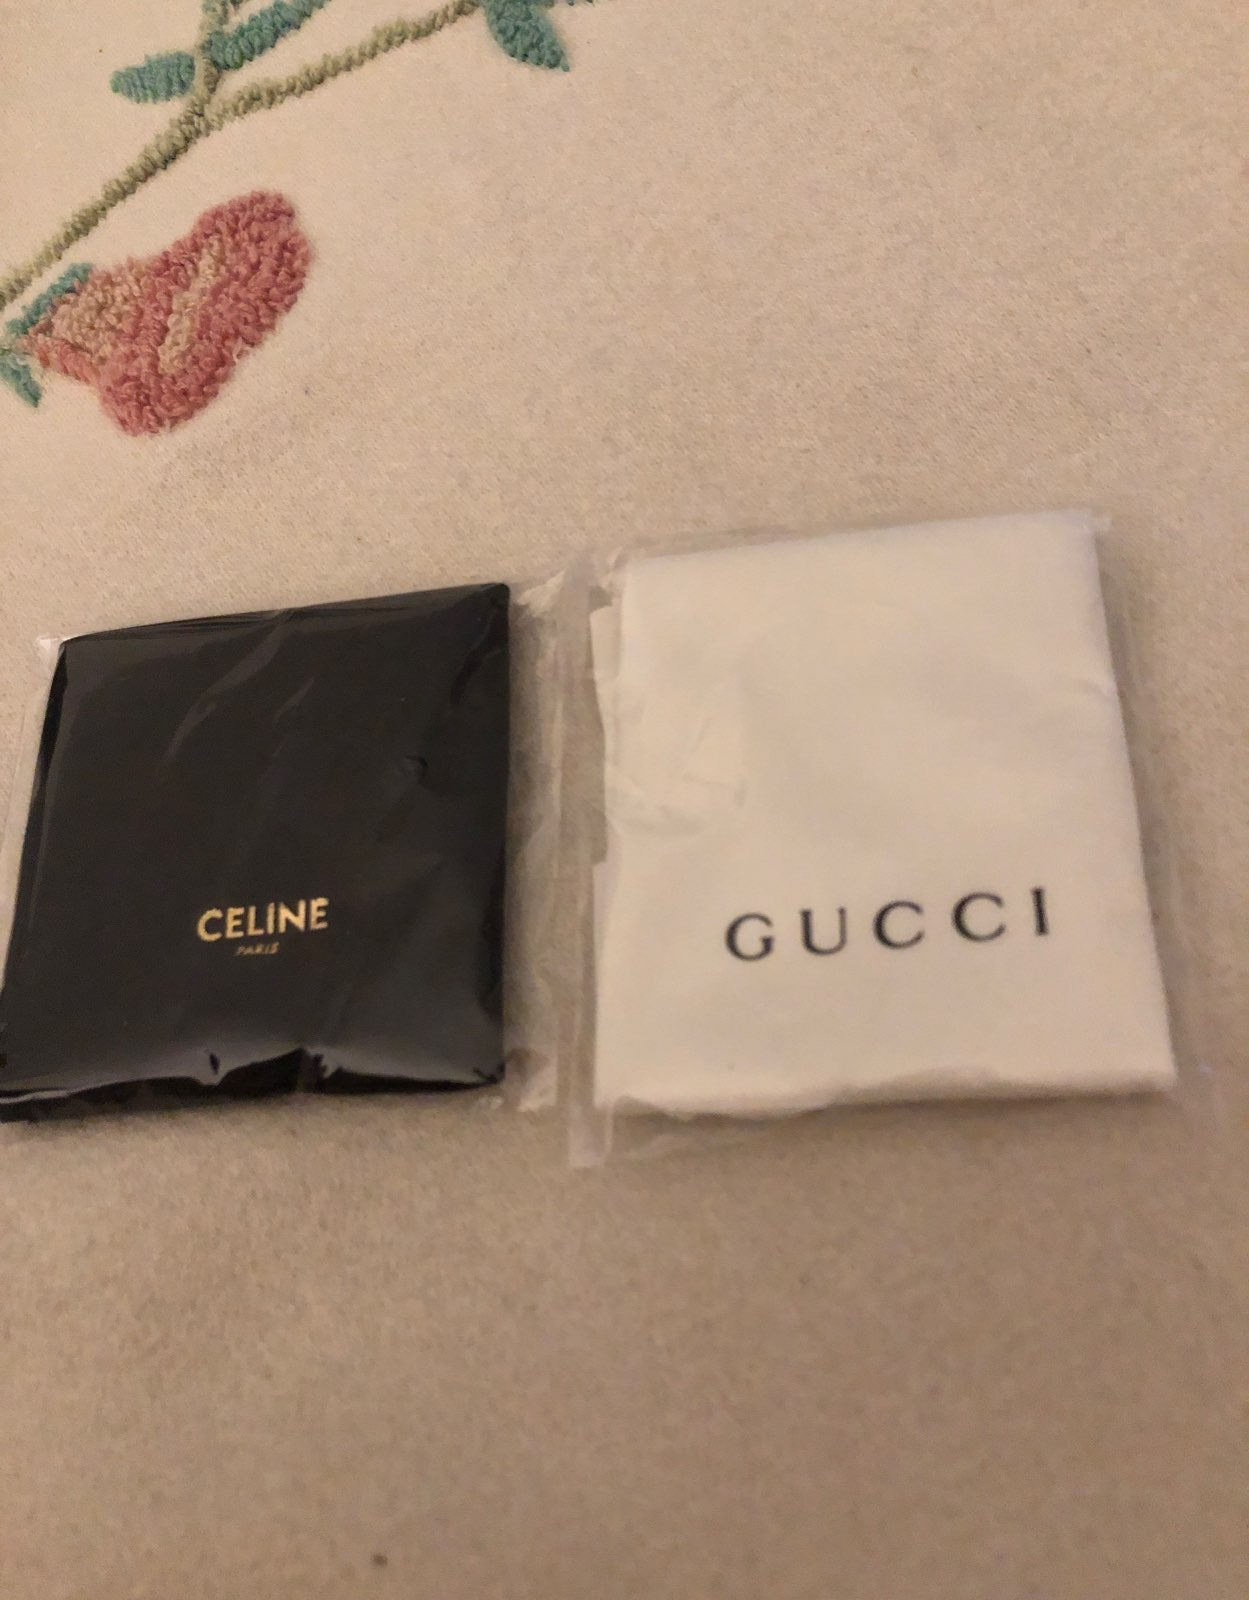 Gucci Celine cleaning cloths for eyeglas